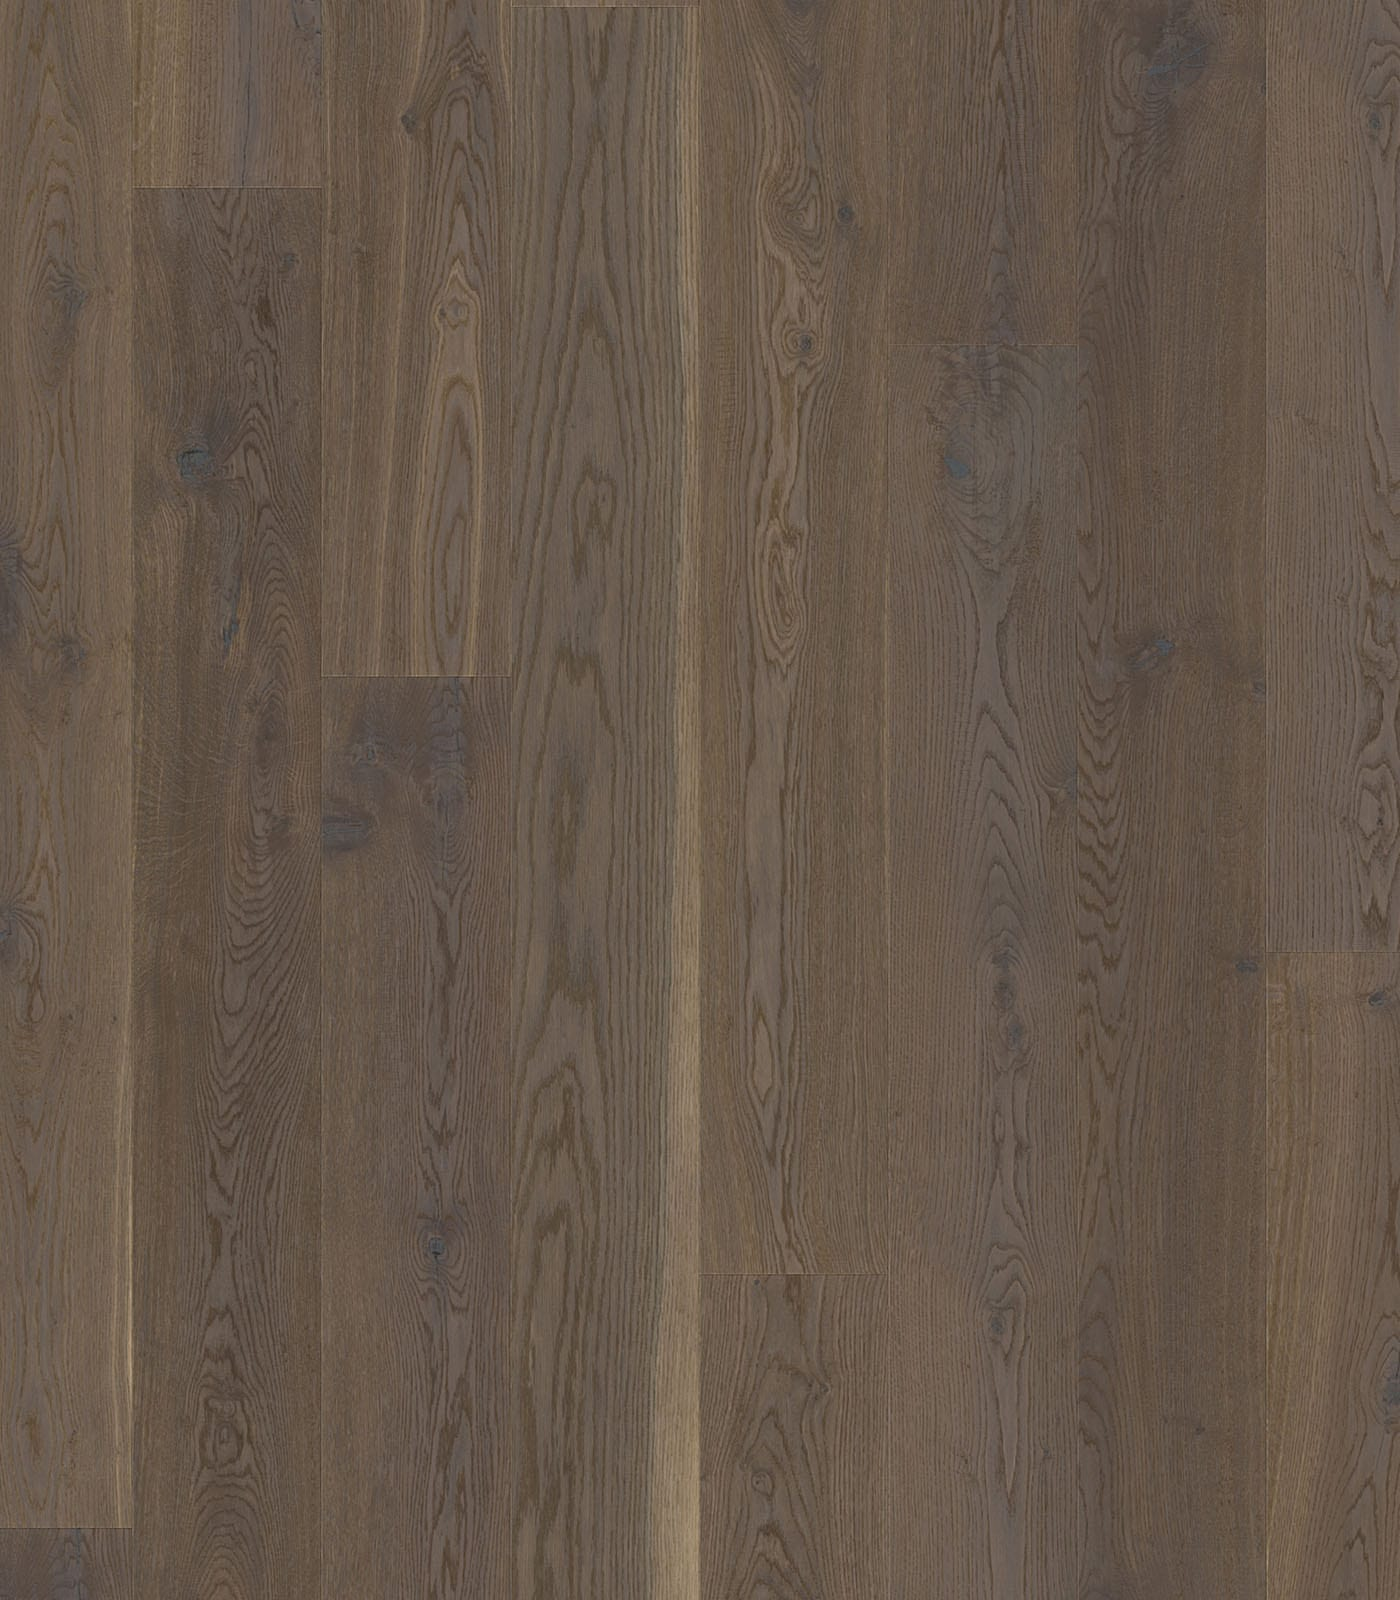 Zermatt-antique Collection-European Oak Floors-flat